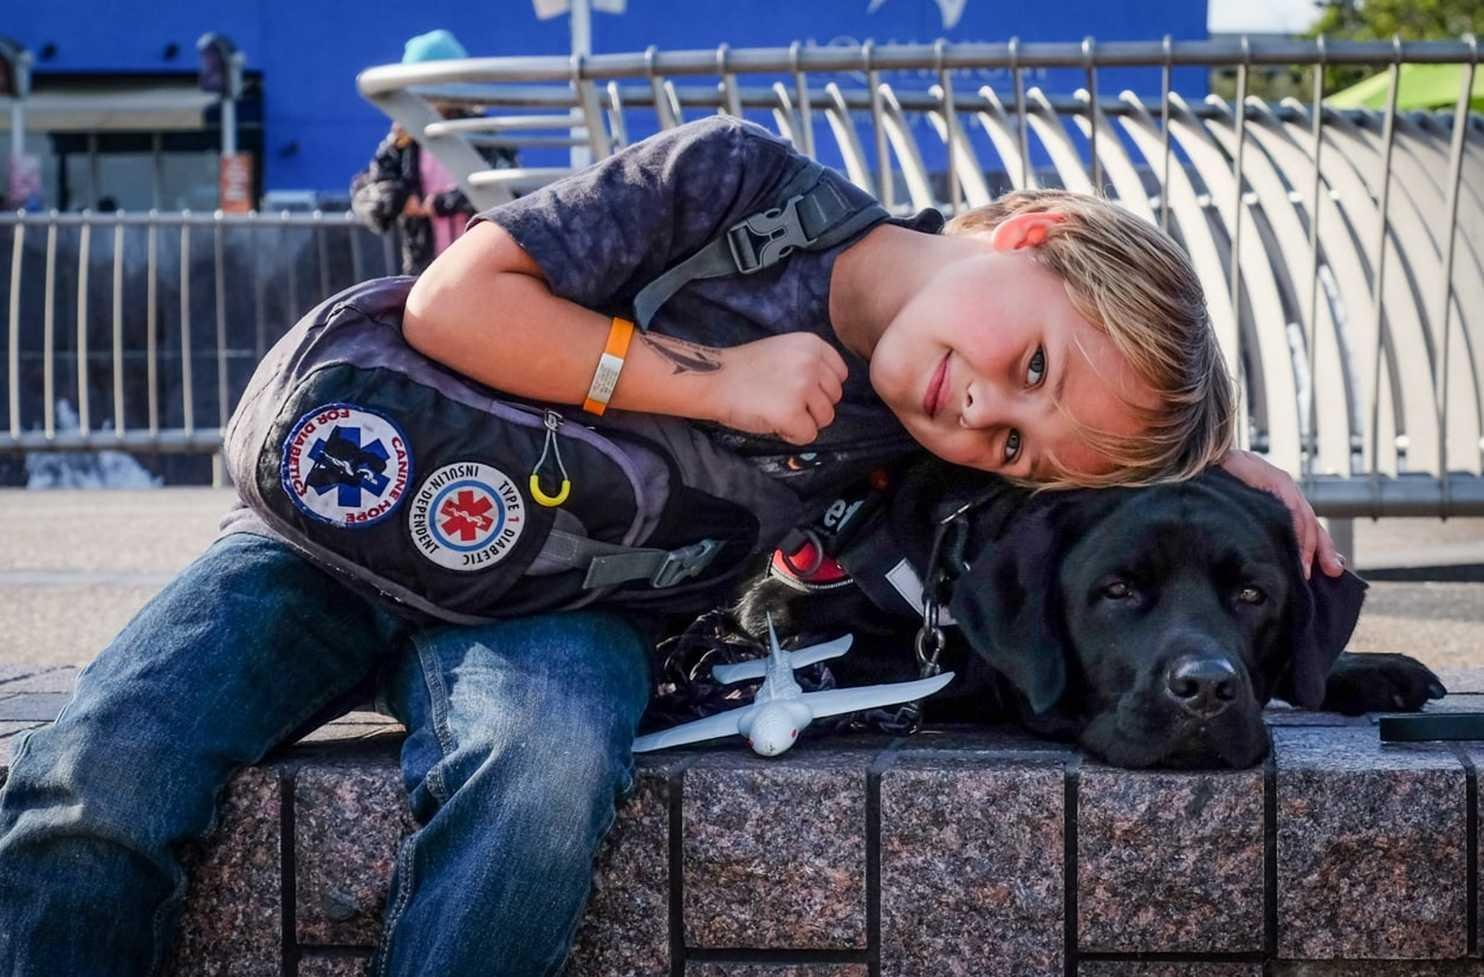 While his parents slept, this 7-year-old boy's life was saved by Jedi, his diabetes-sniffing dog